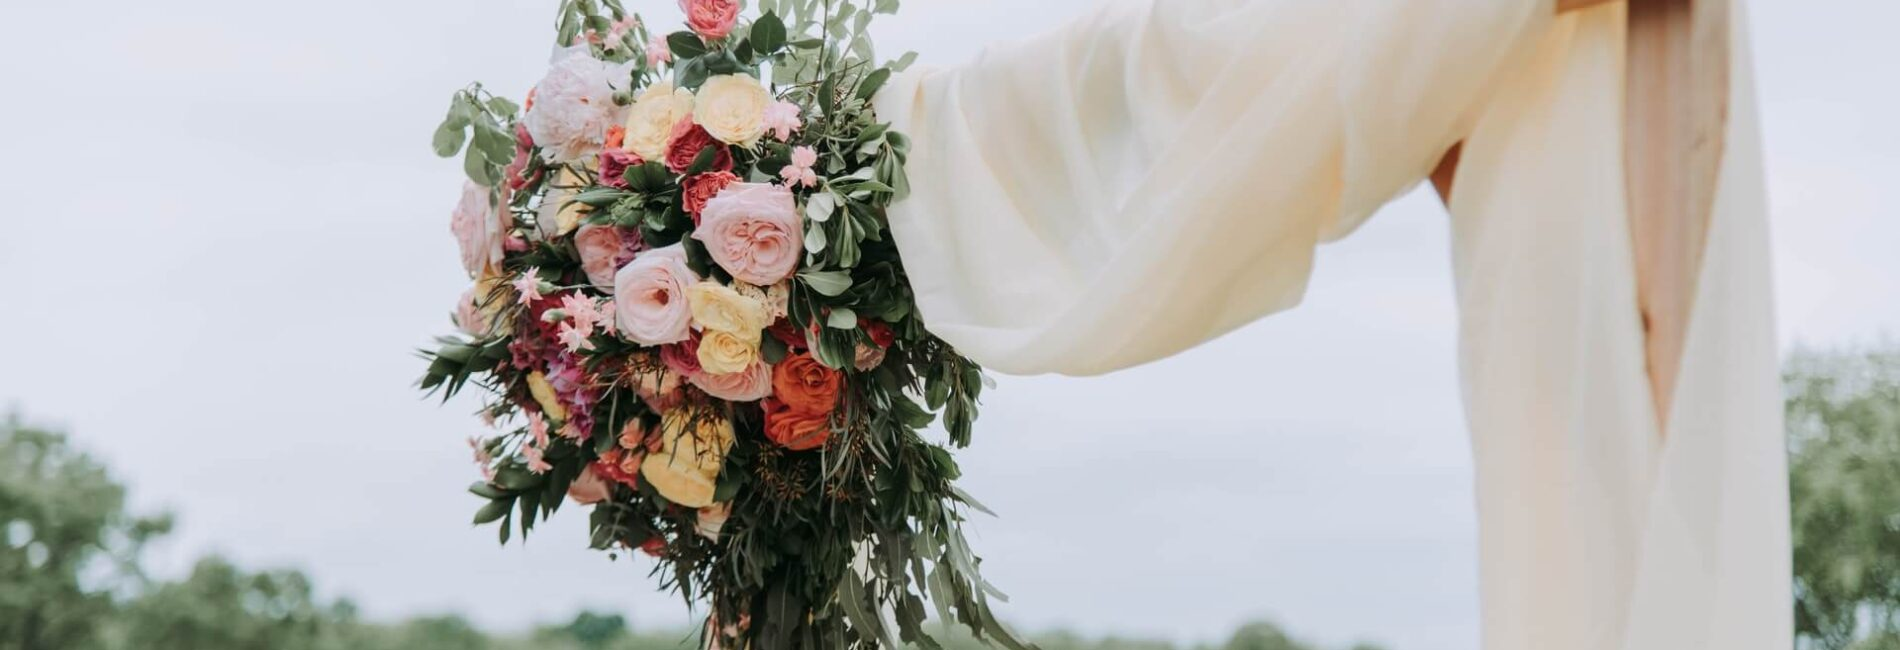 Wedding Poem: A Fun, Frugal, and Creative Gift for a Bridal Shower Using Household Items